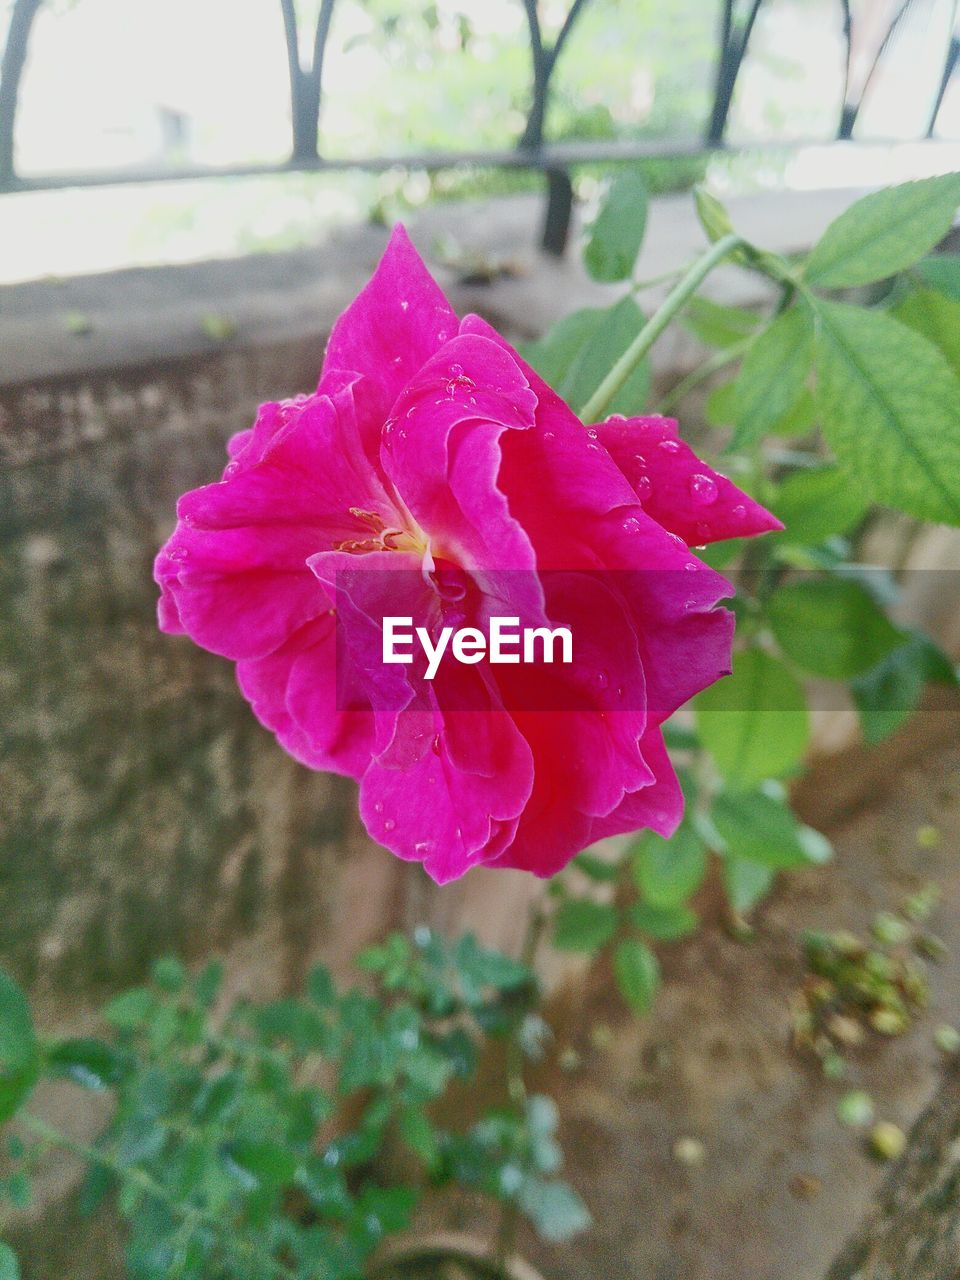 flower, petal, beauty in nature, fragility, nature, flower head, pink color, growth, freshness, close-up, rose - flower, blooming, no people, plant, day, focus on foreground, outdoors, leaf